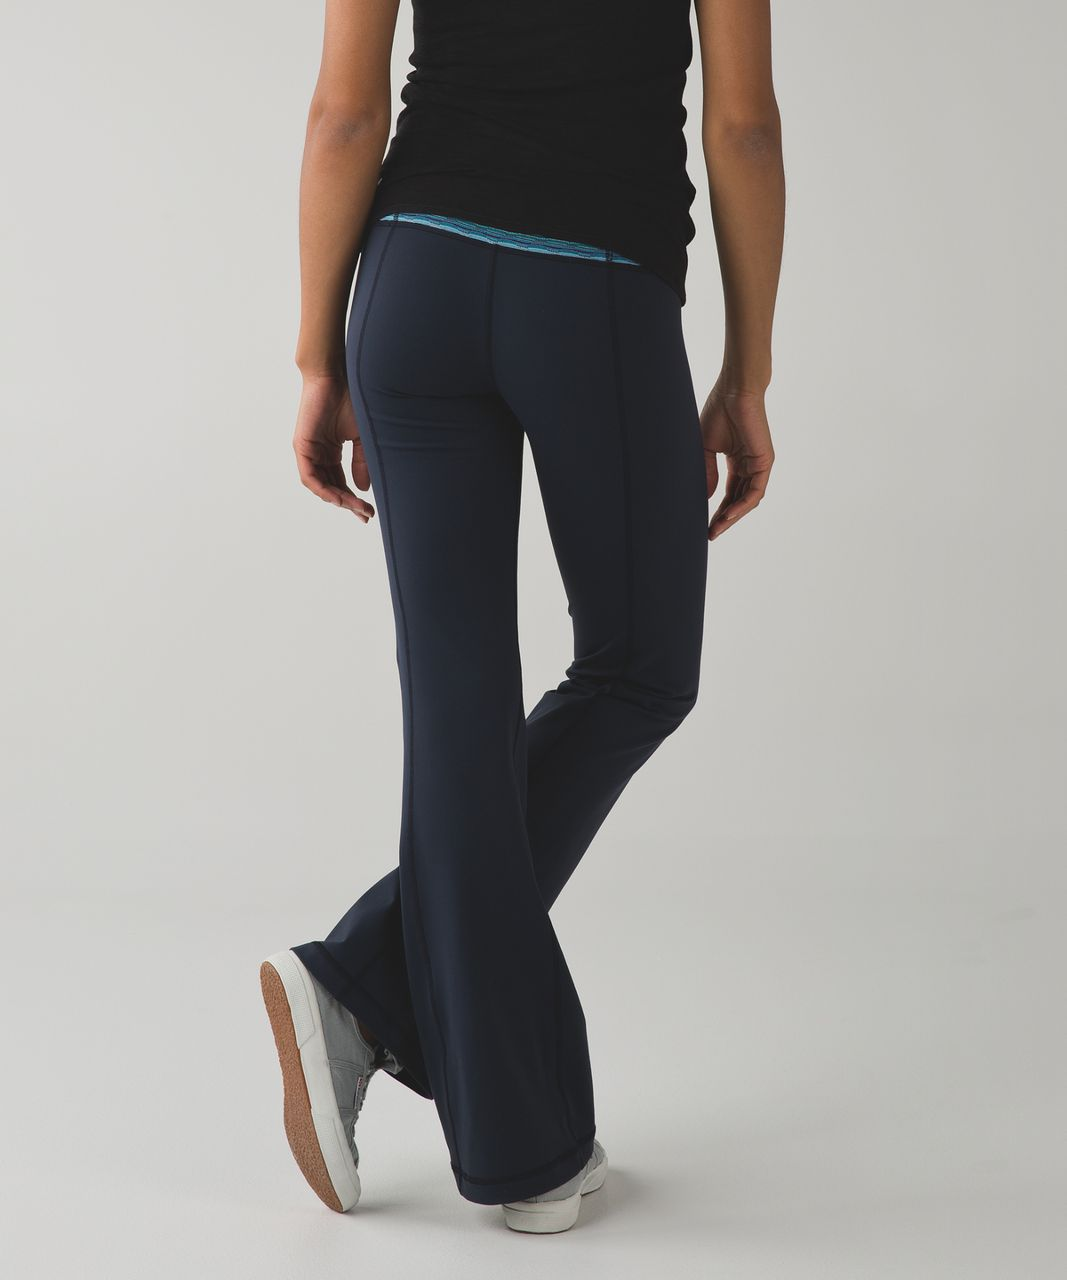 Lululemon Groove Pant III (Regular) - Inkwell / Space Dye Twist Naval Blue Peacock Blue